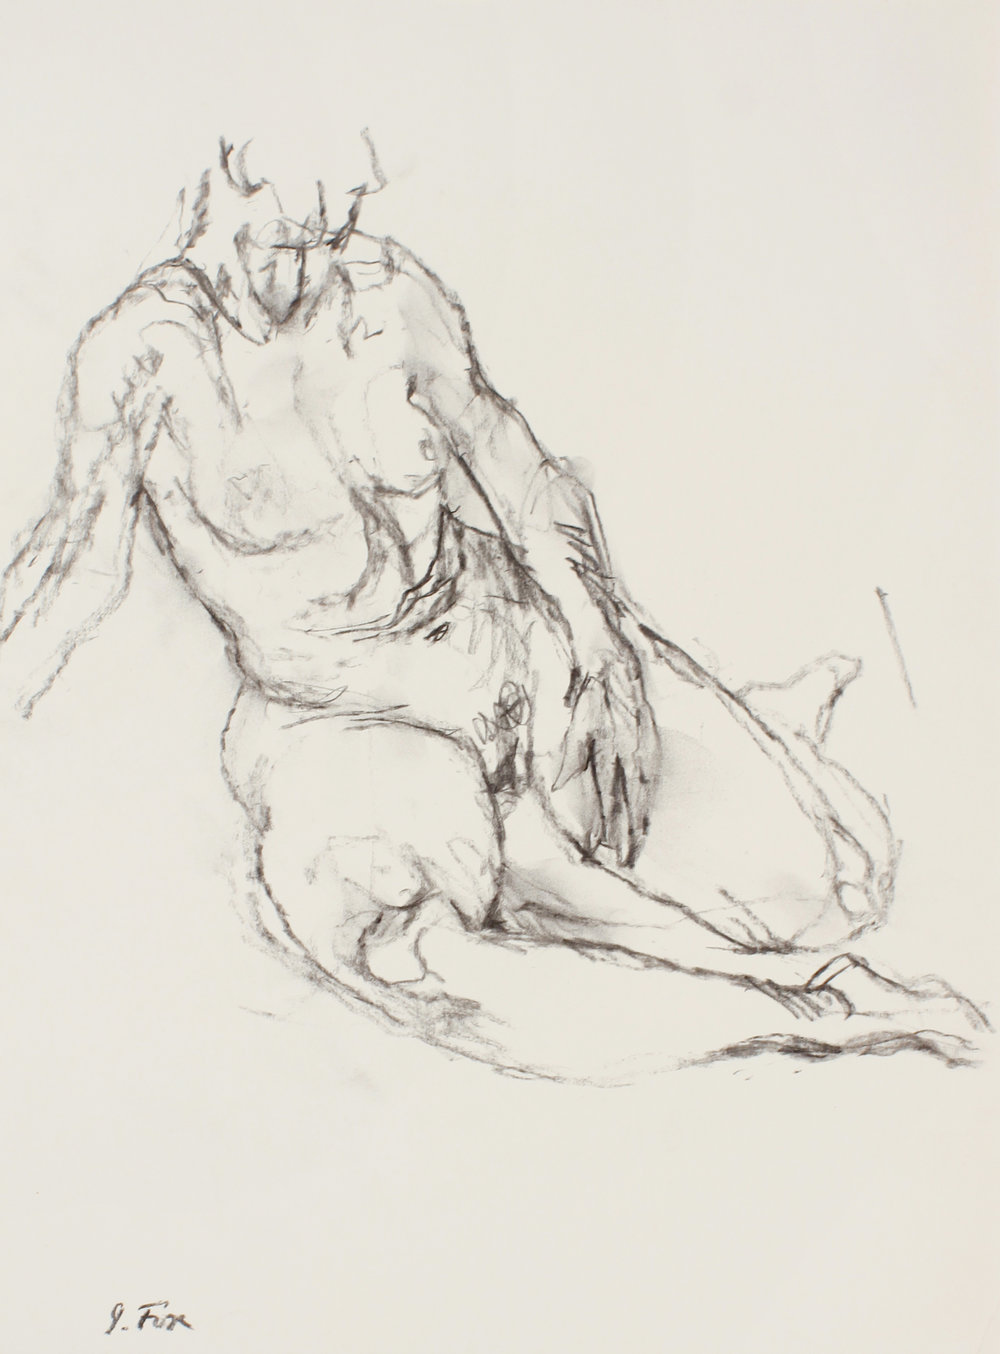 2000s_Seated_Nude_on_Floor_charcoal_on_paper_15x11in_WPF519.jpg